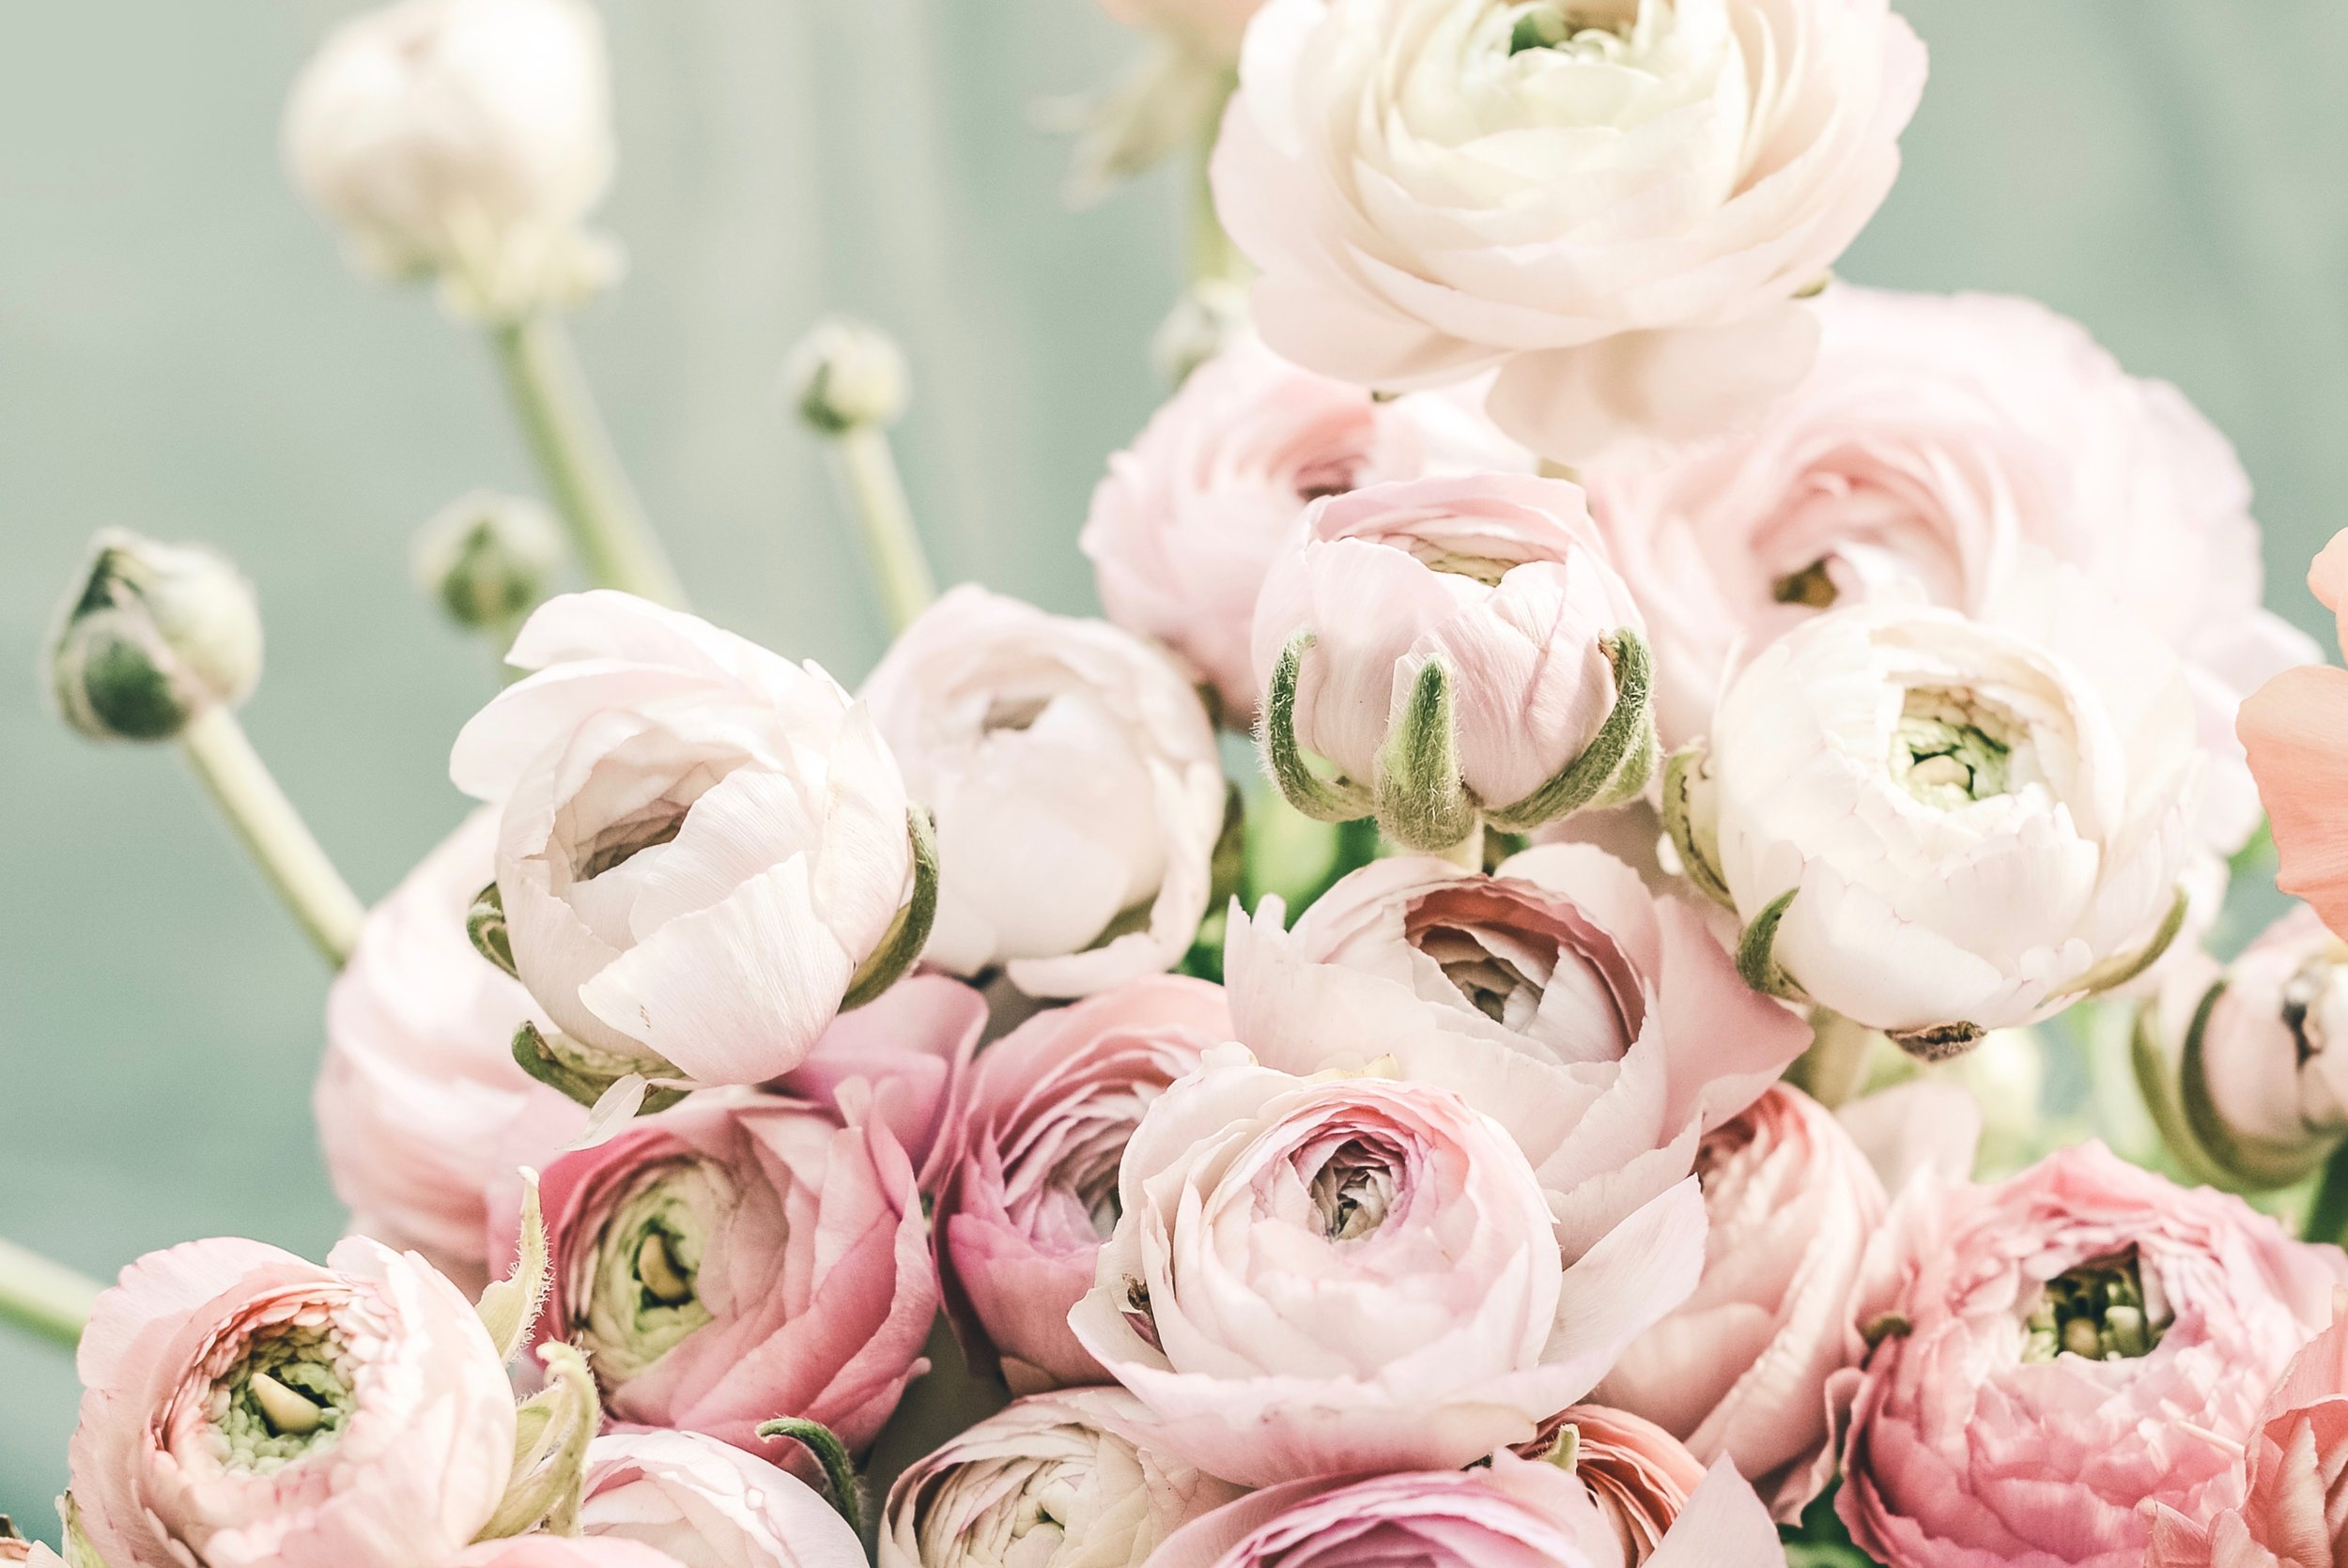 List of spring flowers ranunculus1.jpg